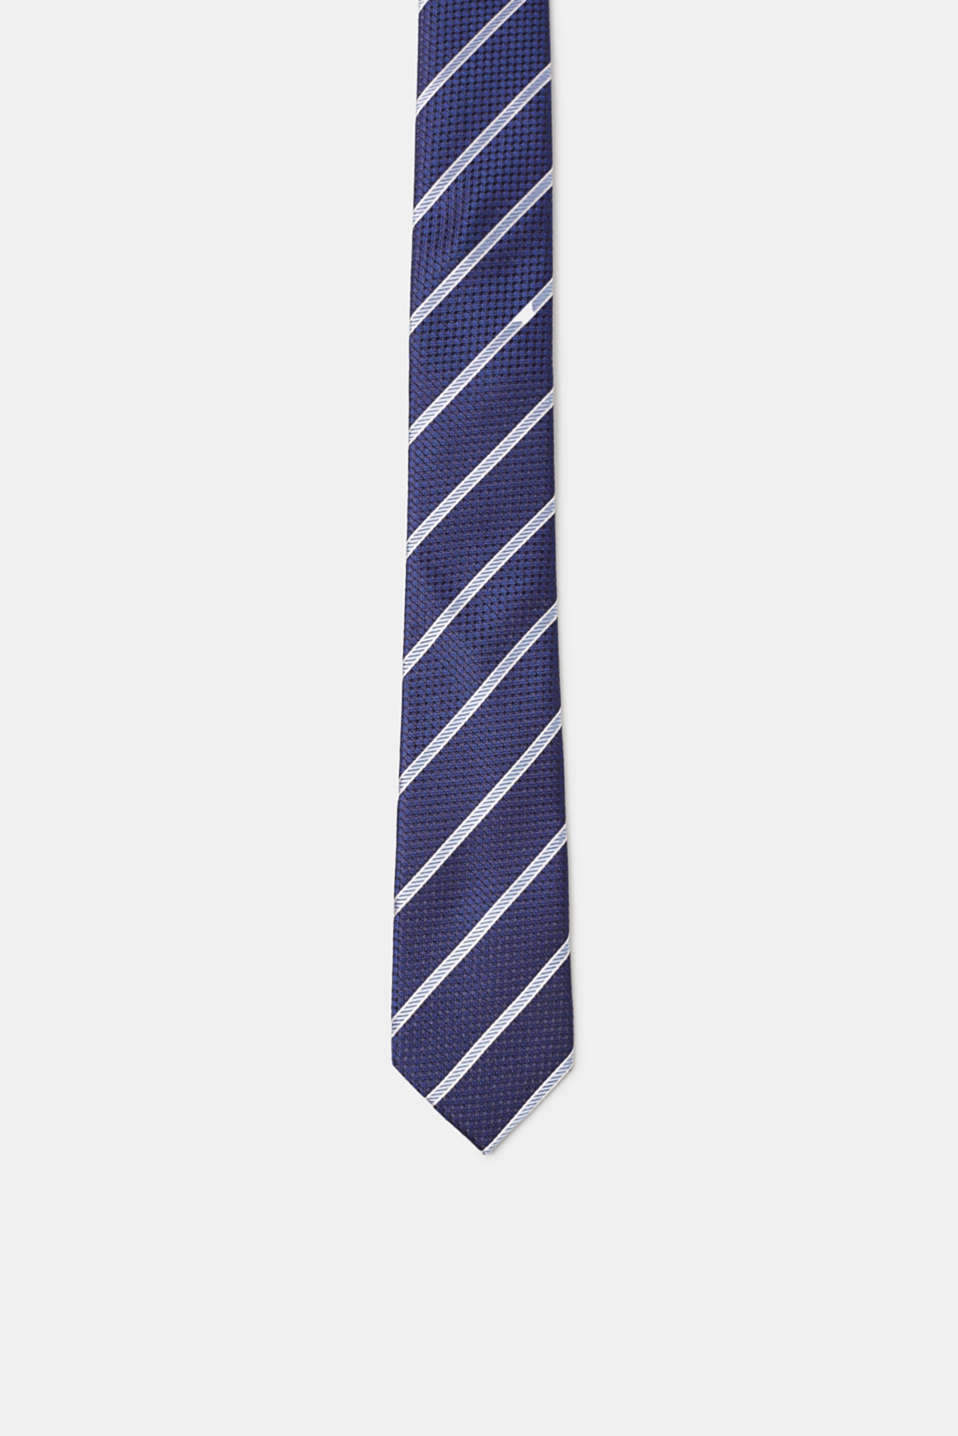 Esprit - Silk tie with a striped pattern